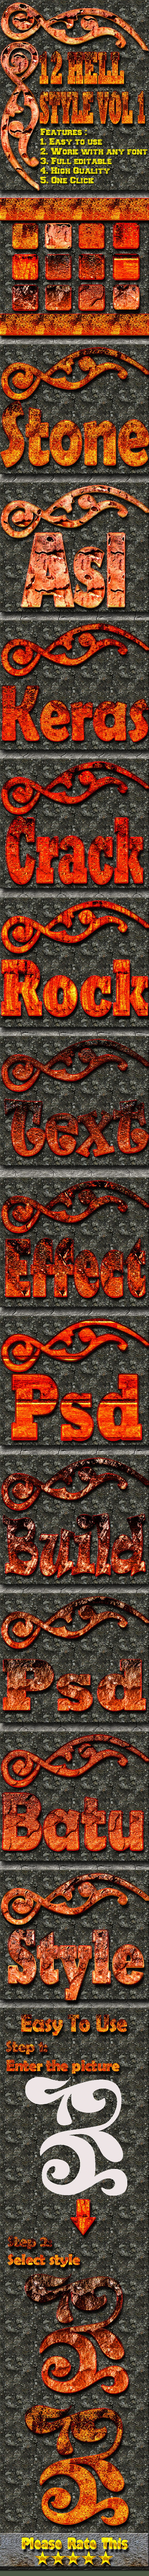 12 Hell Text Effect Style Vol 1